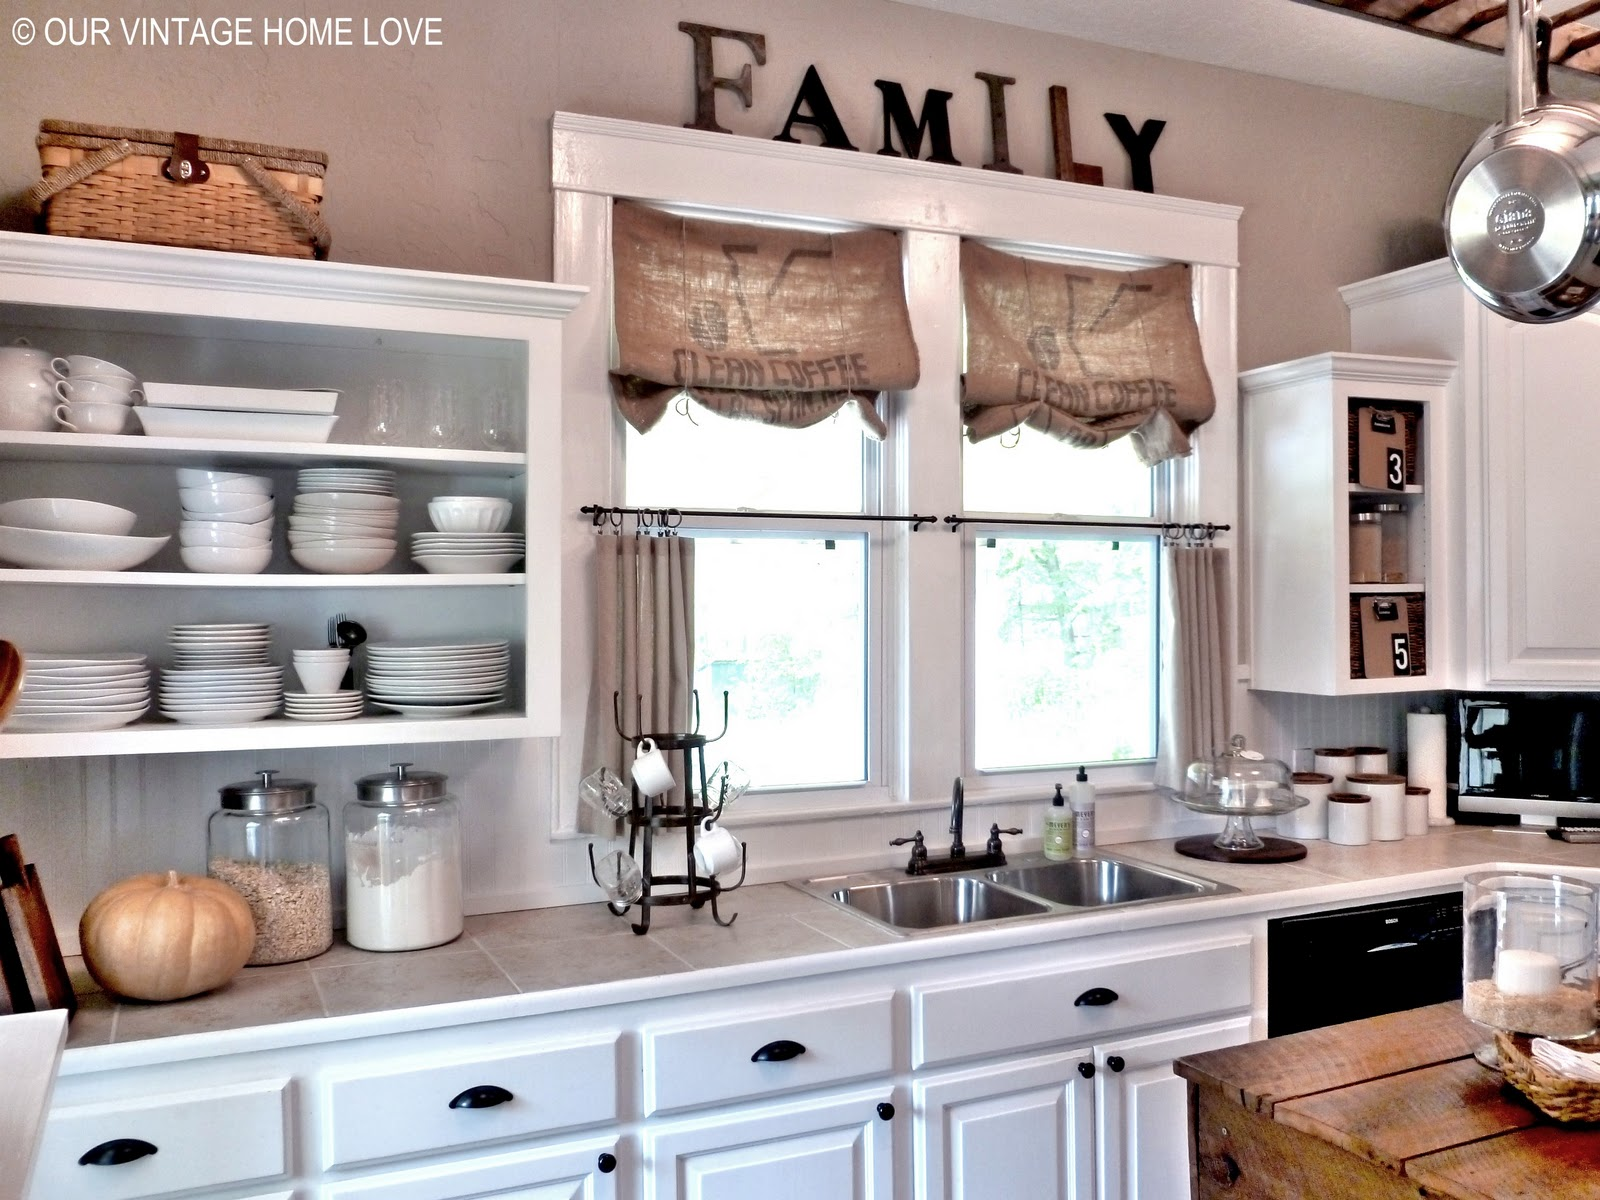 Cheap kitchen curtains window treatments - Our Vintage Home Love Inexpensive Window Treatments And A Giveaway